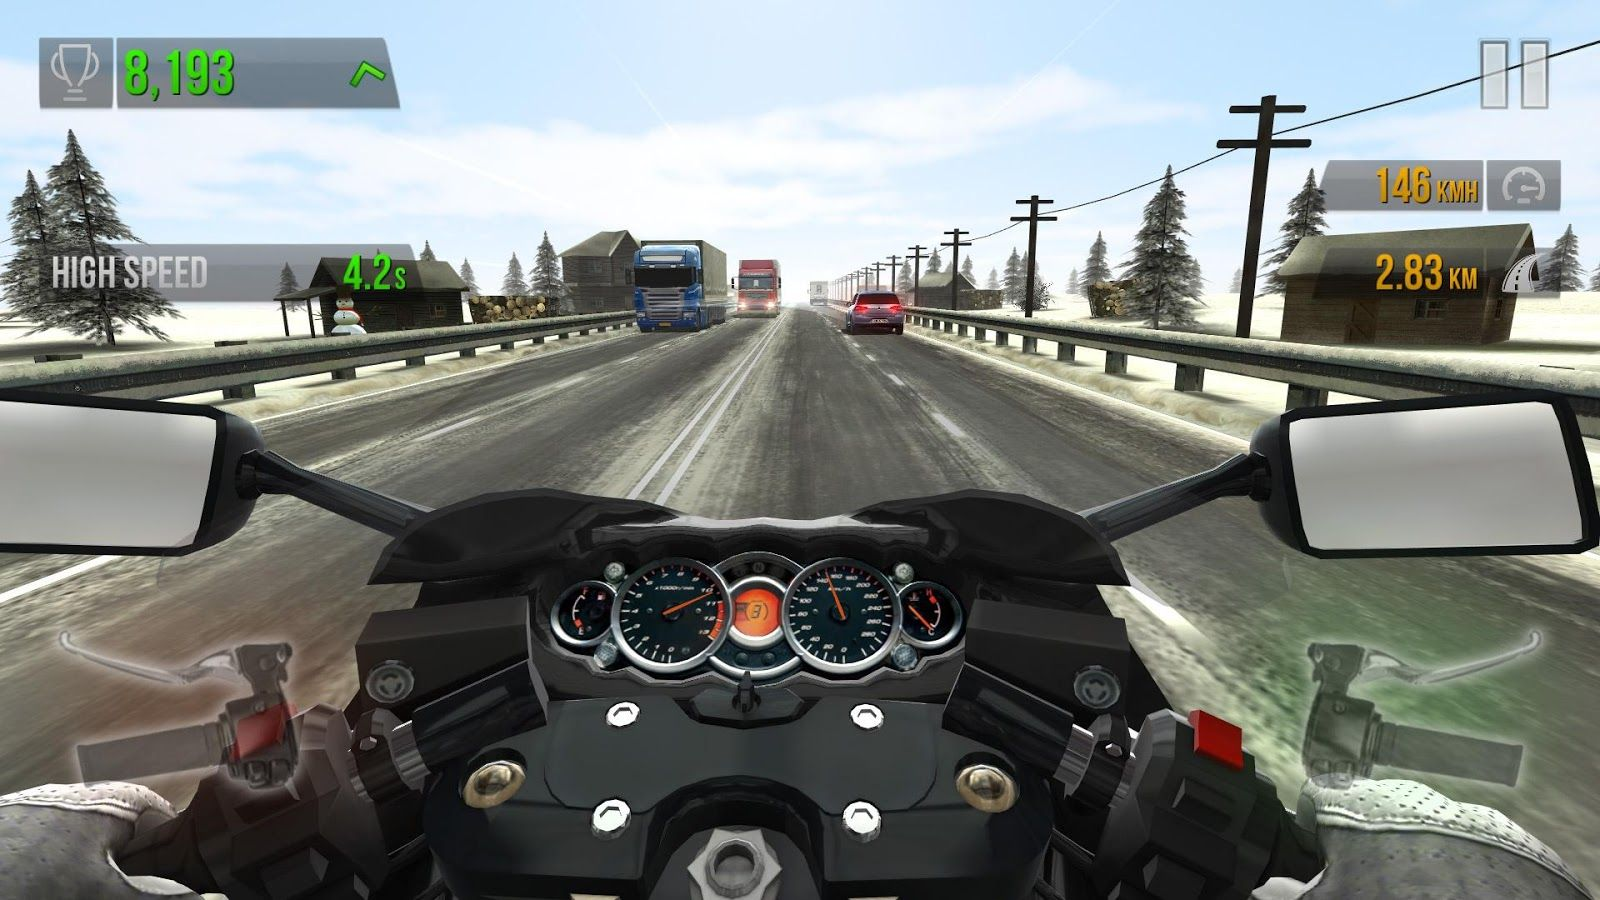 Traffic Rider APK Game Update Version Download Free for Android On Apps  Store.The Game